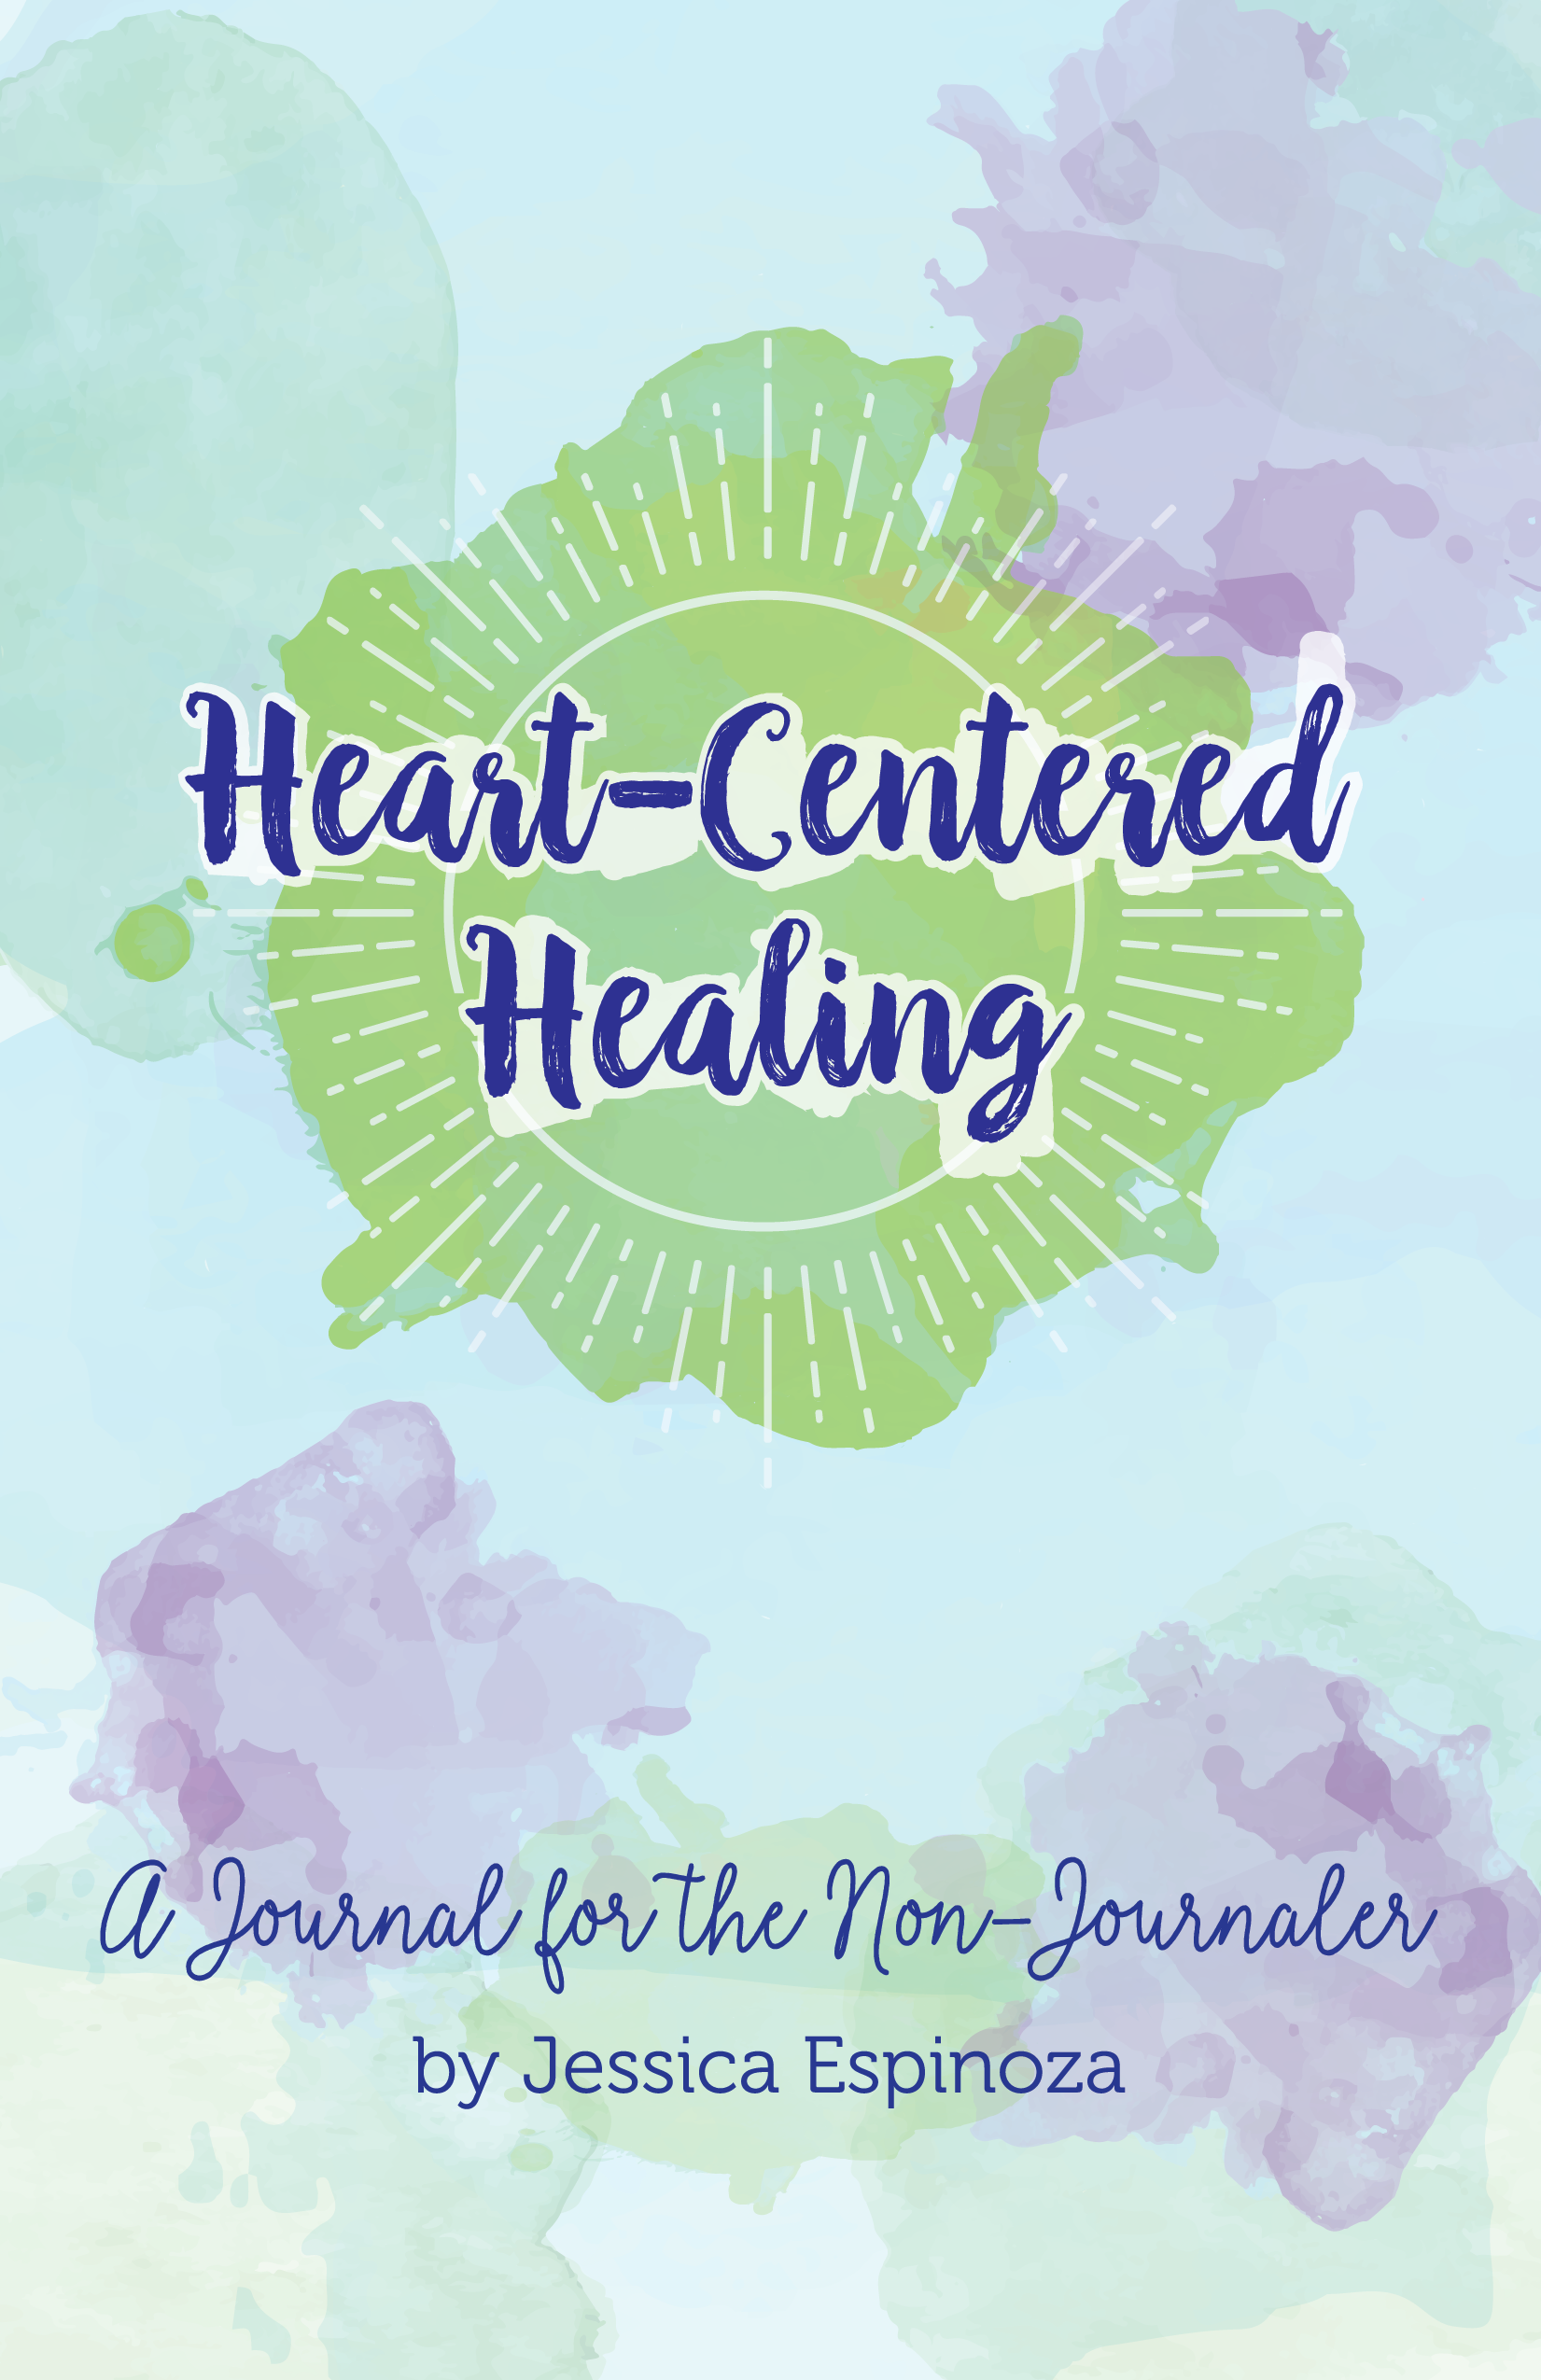 Heart Centered Healing by Jessica Espinoza CMYK PDF Front Cover_FRONT COVER heart centered healing journal.png